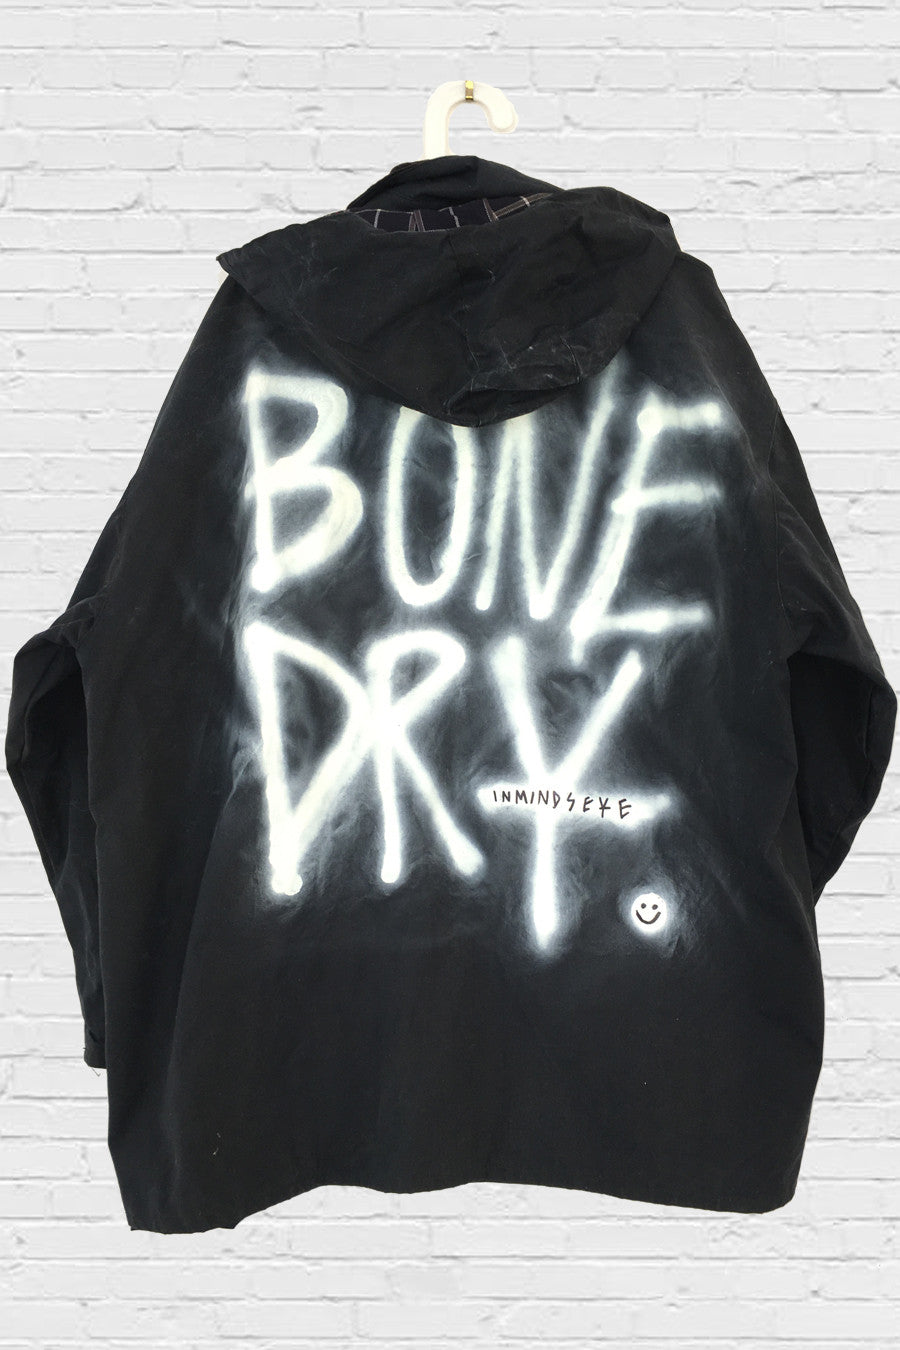 BONE DRY COAT / custom COAT 1 of 1